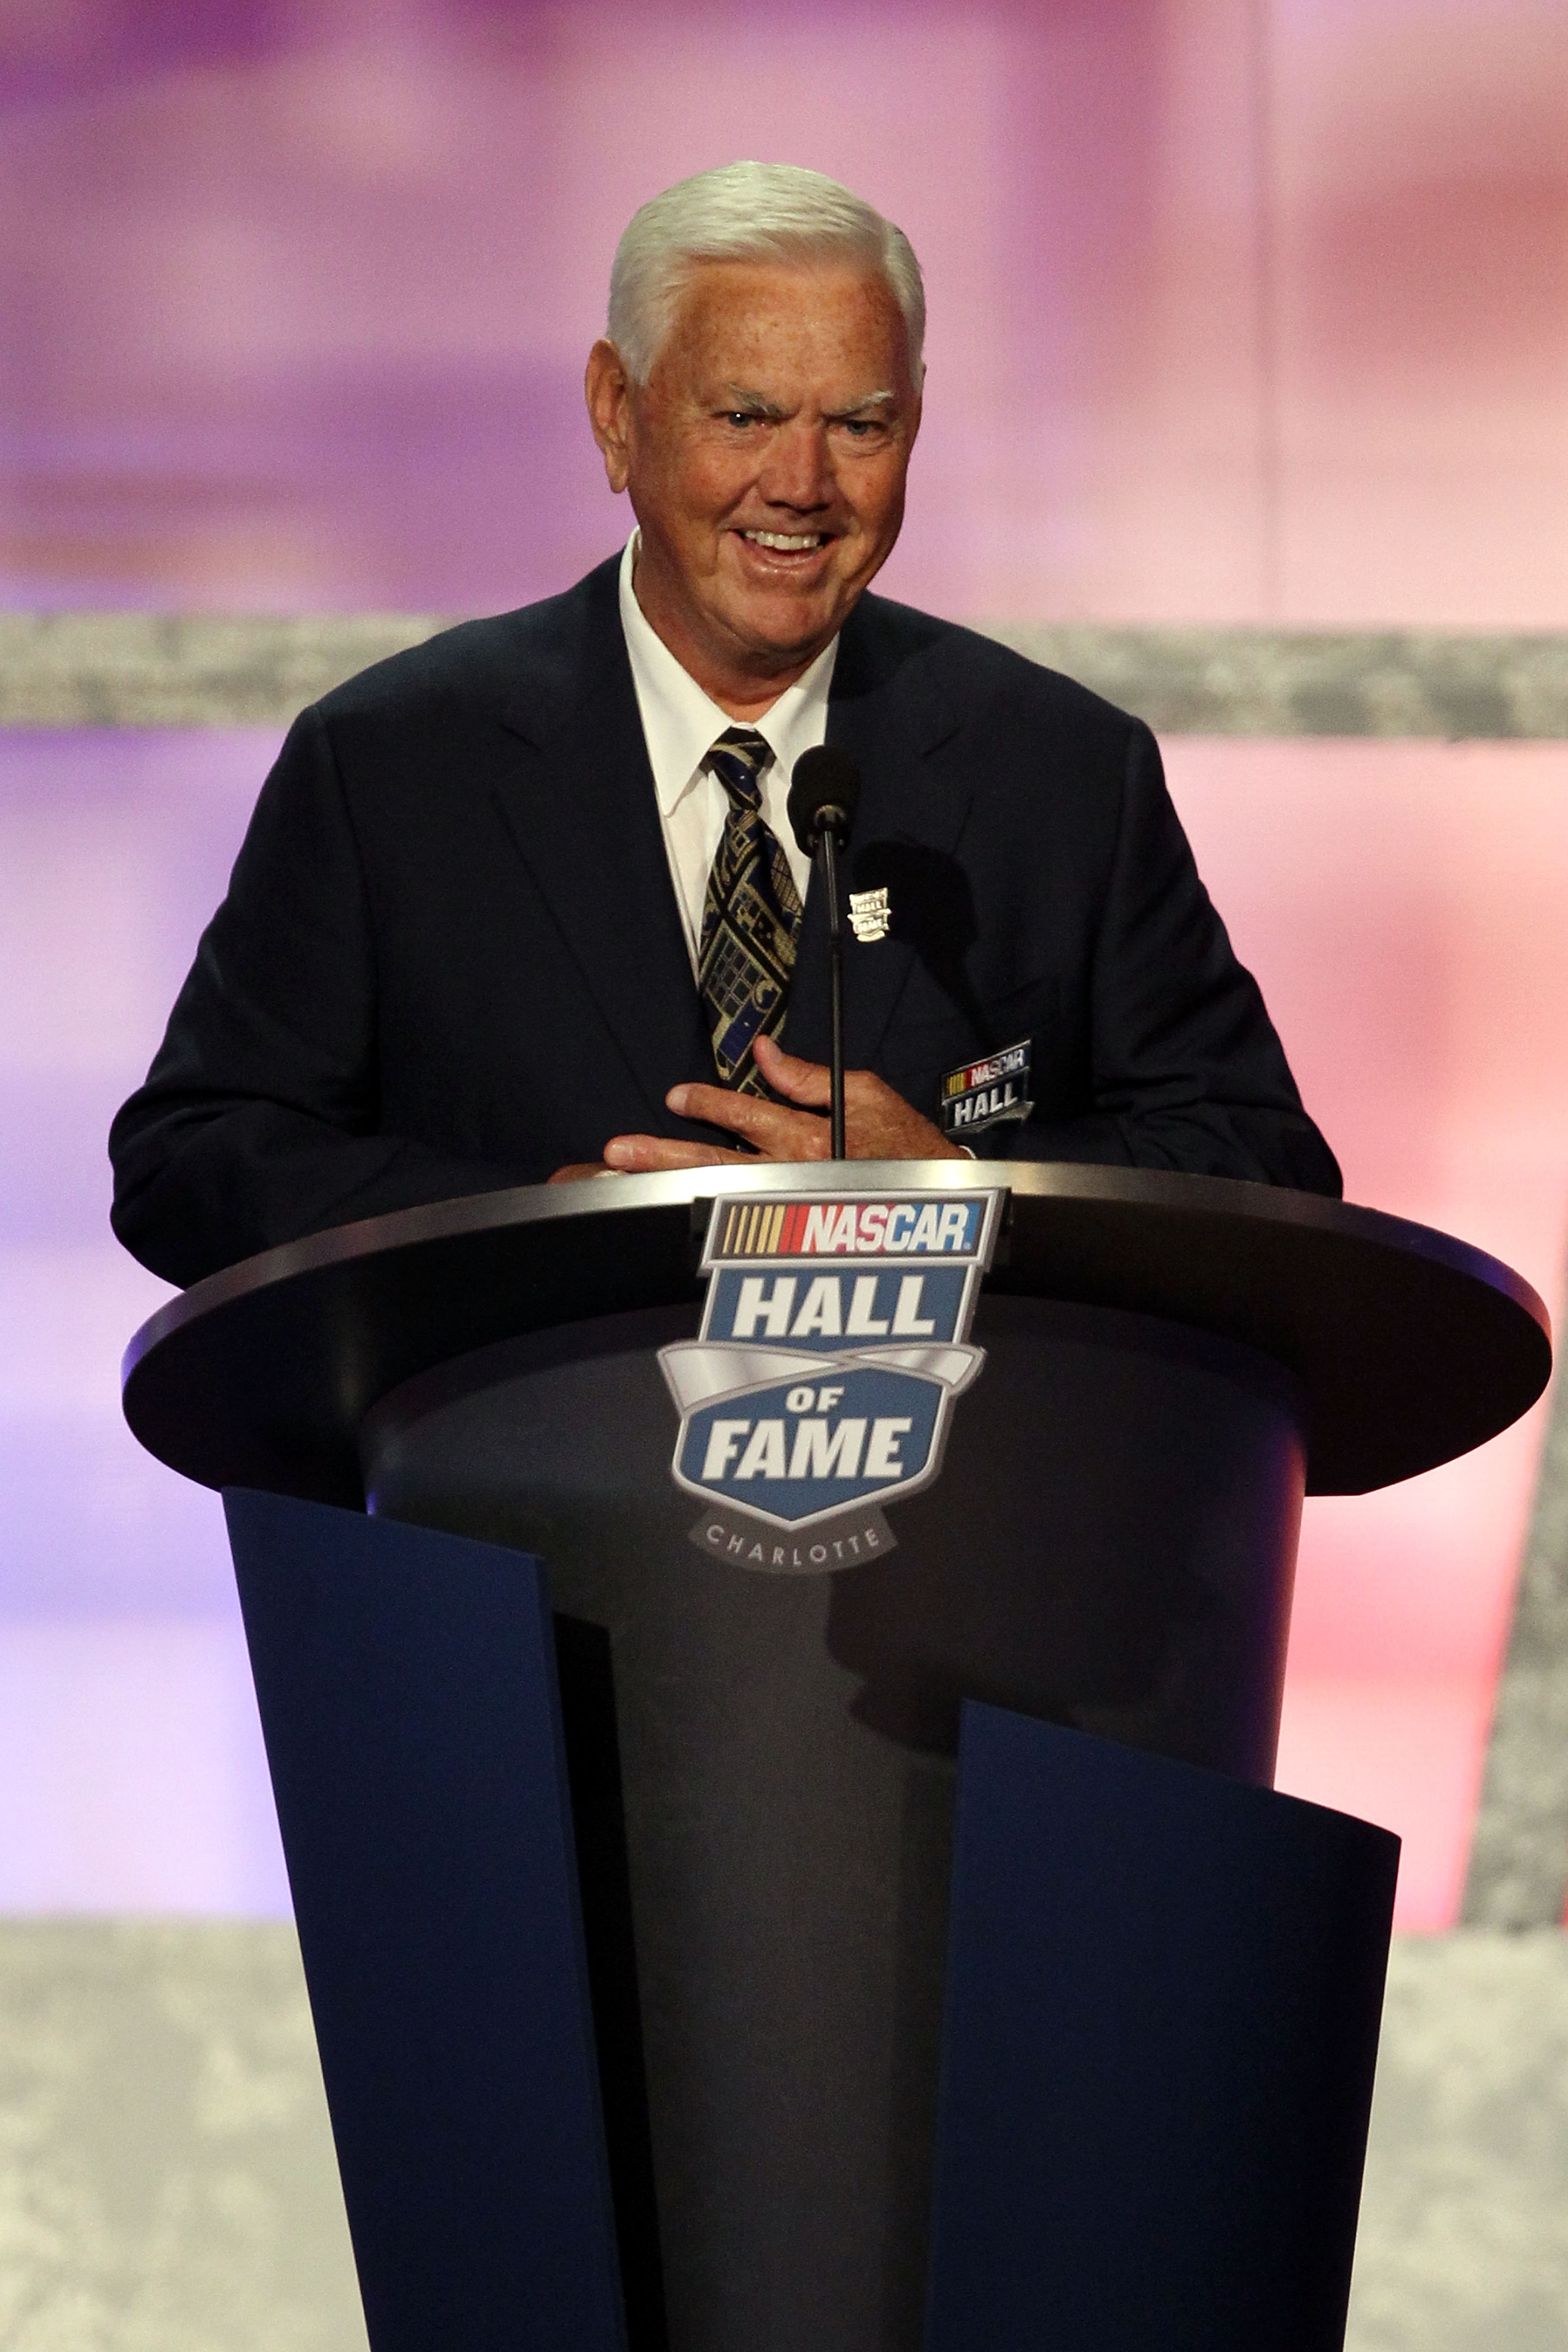 CHARLOTTE, NC - MAY 23:  Hall of Fame inductee Junior Johnson speaks during the 2010 NASCAR Hall of Fame Induction Ceremony at the Charlotte Convention Center on May 23, 2010 in Charlotte, North Carolina.  (Photo by Streeter Lecka/Getty Images)